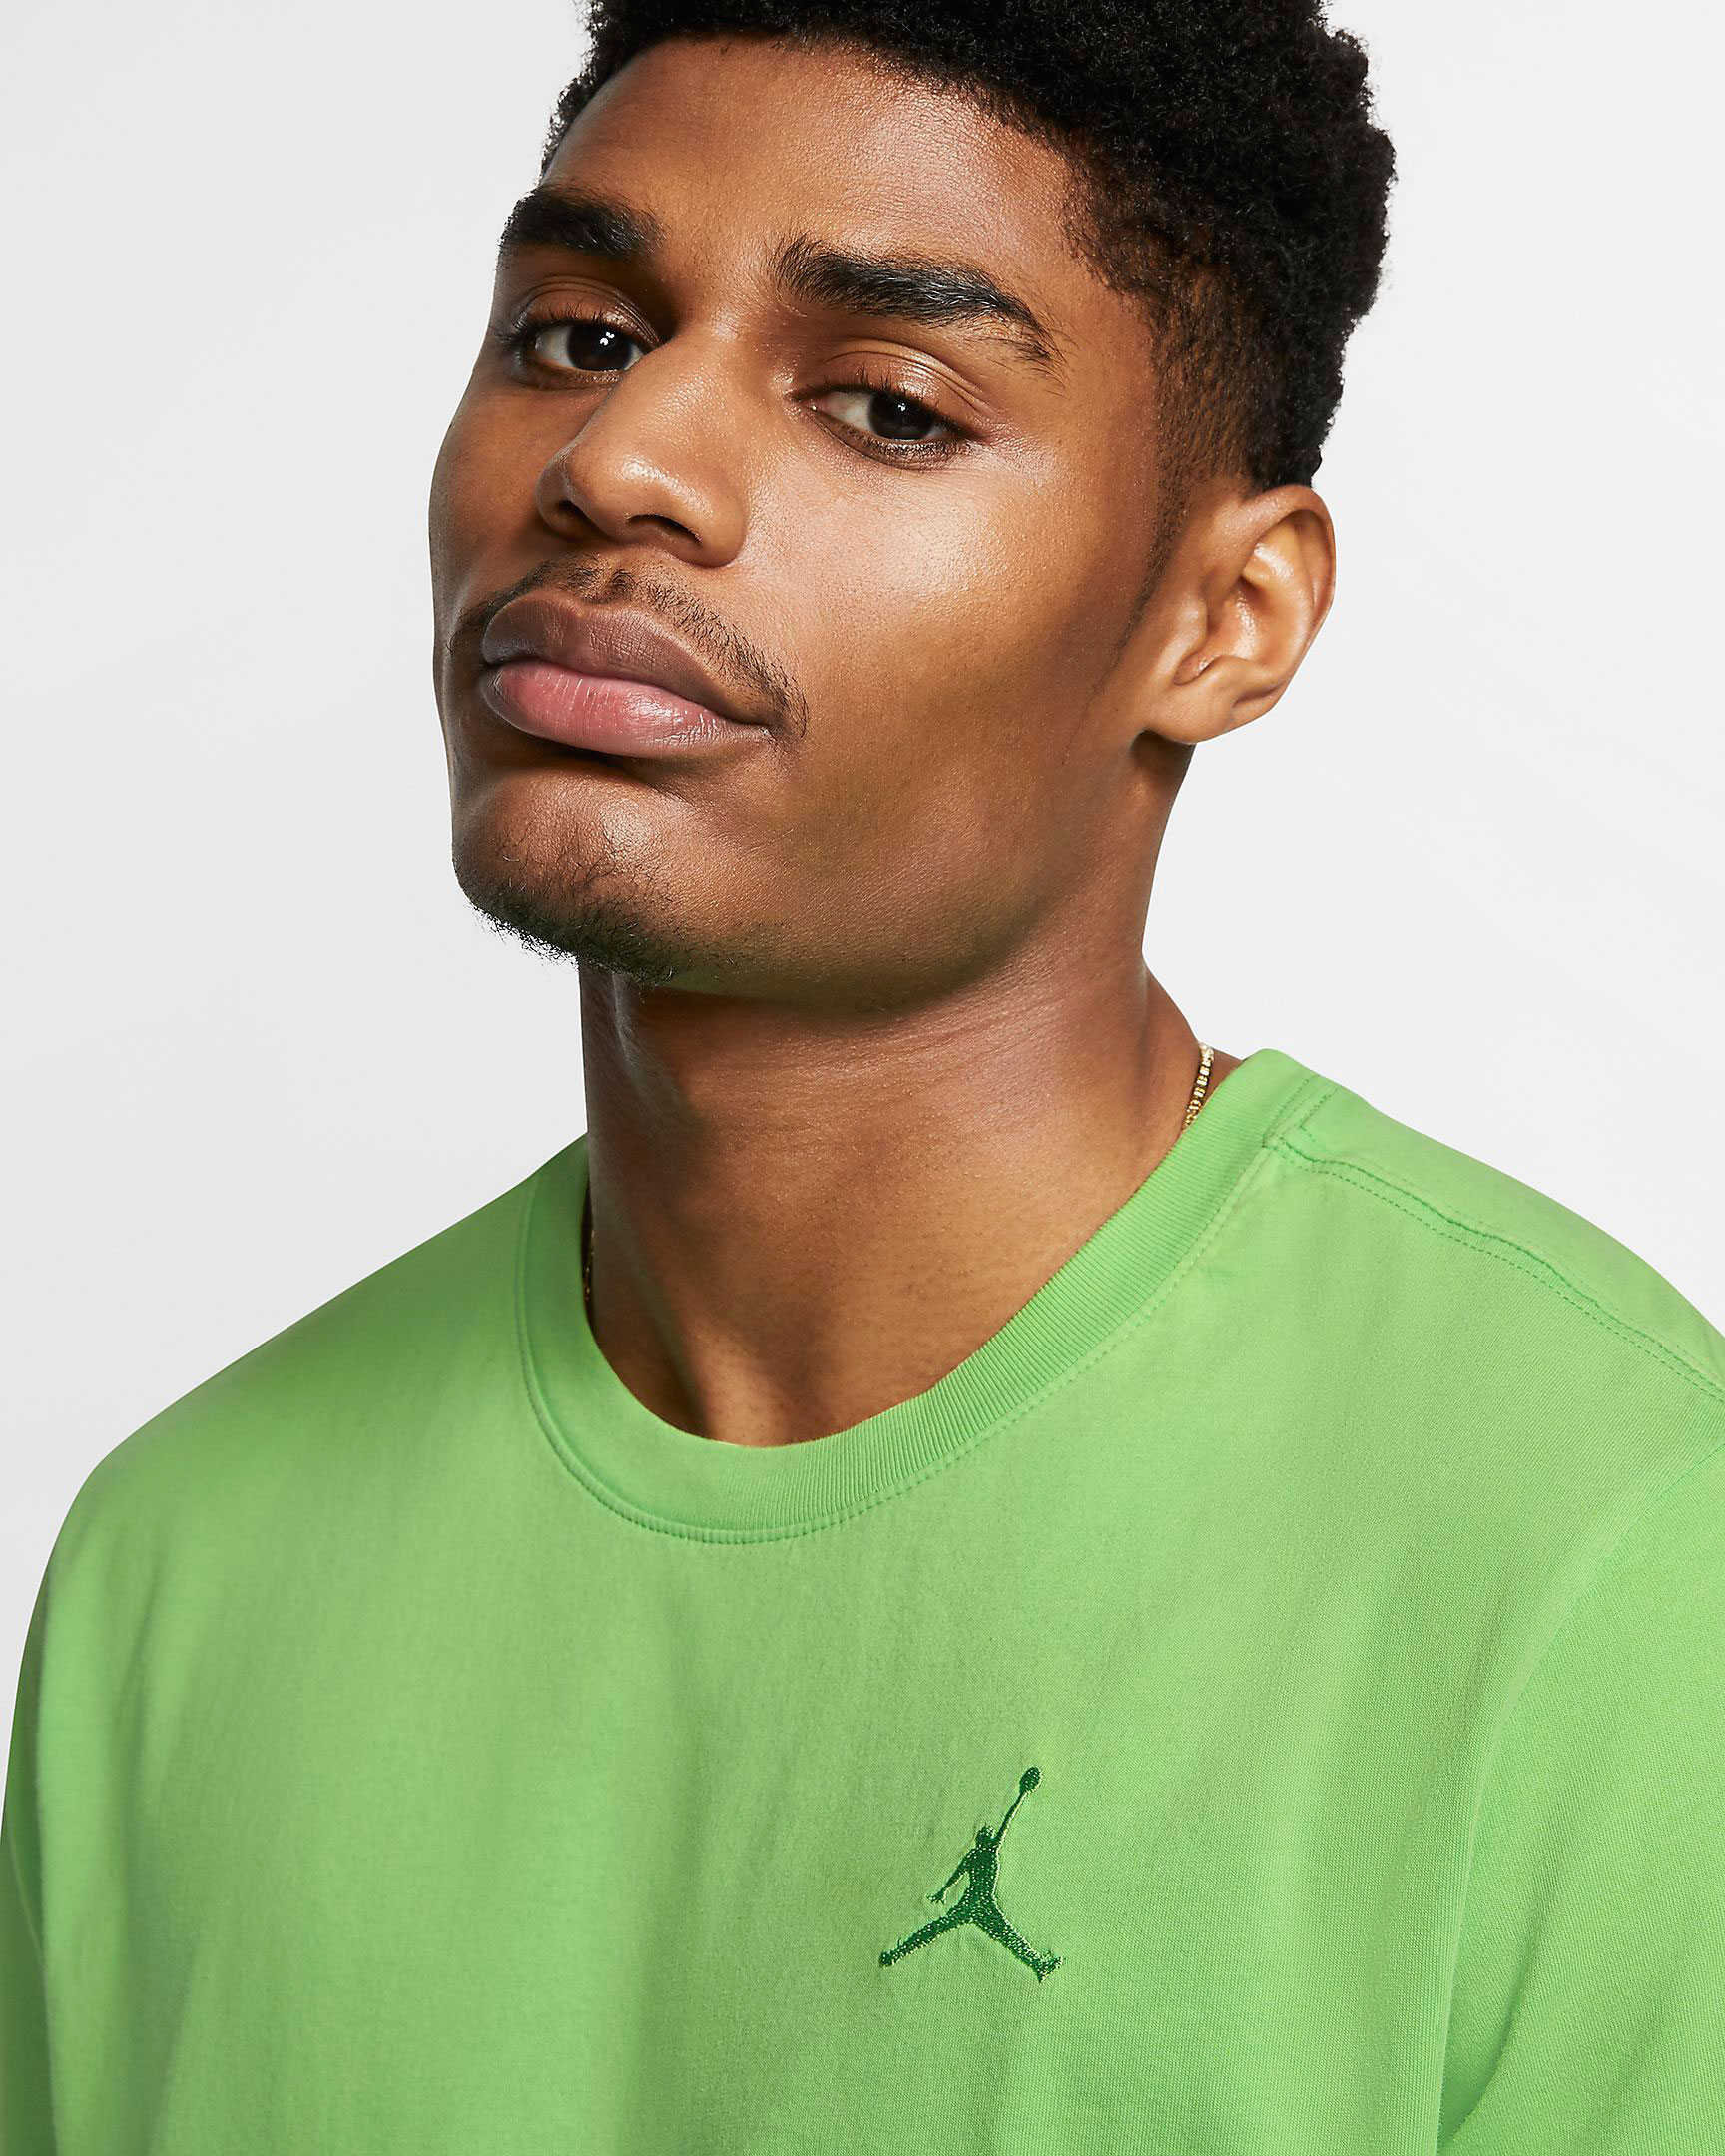 air-jordan-1-zoom-zen-green-shirt-match-1